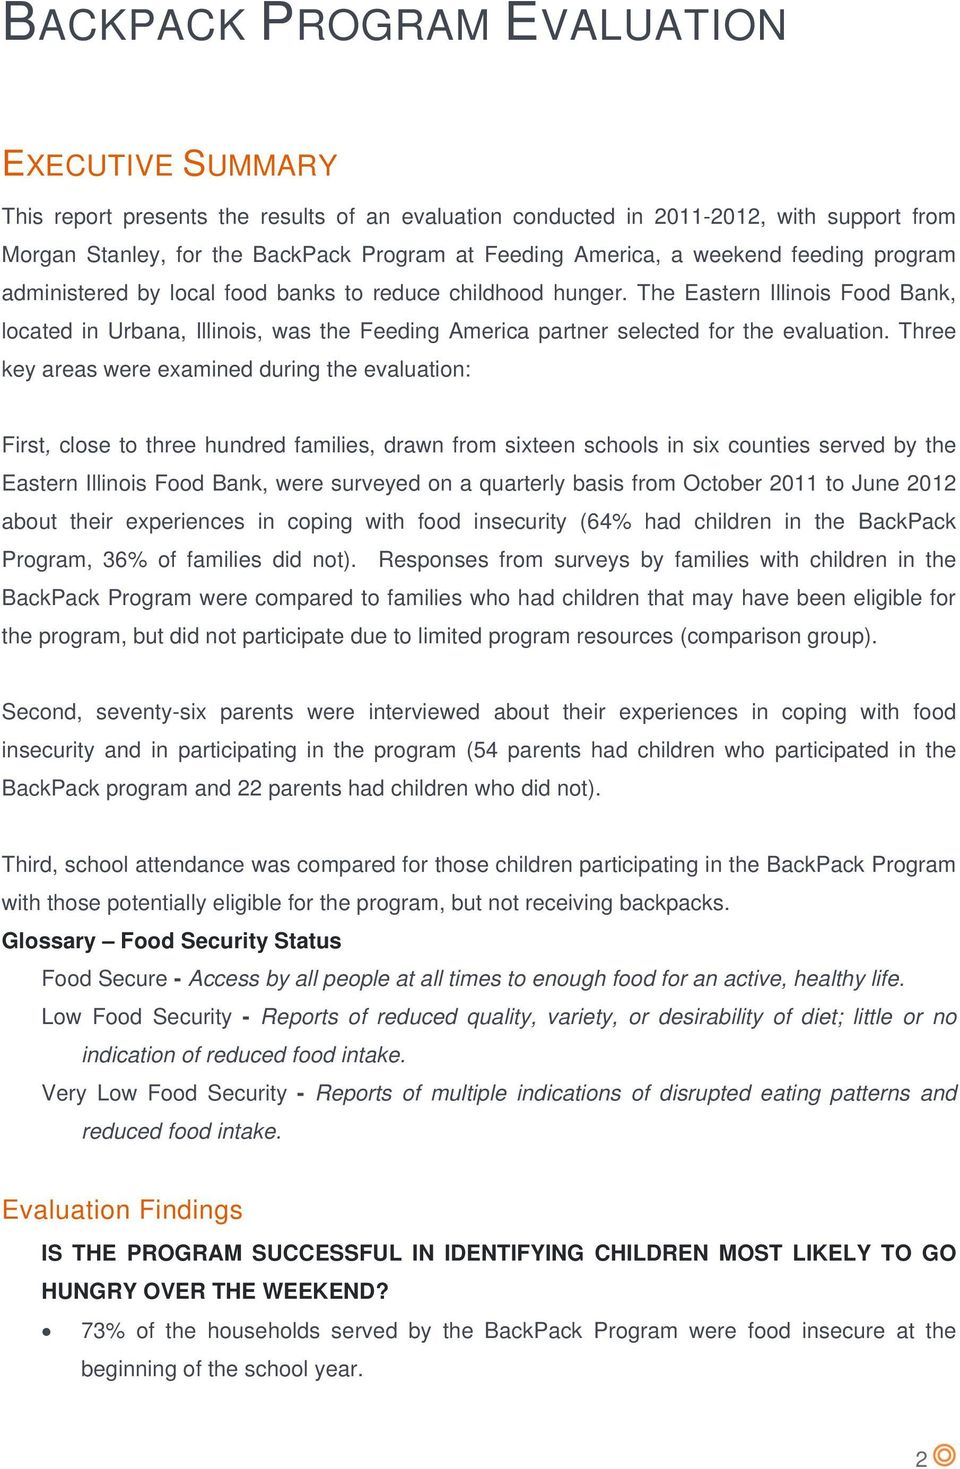 The Eastern Illinois Food Bank, located in Urbana, Illinois, was the Feeding America partner selected for the evaluation.